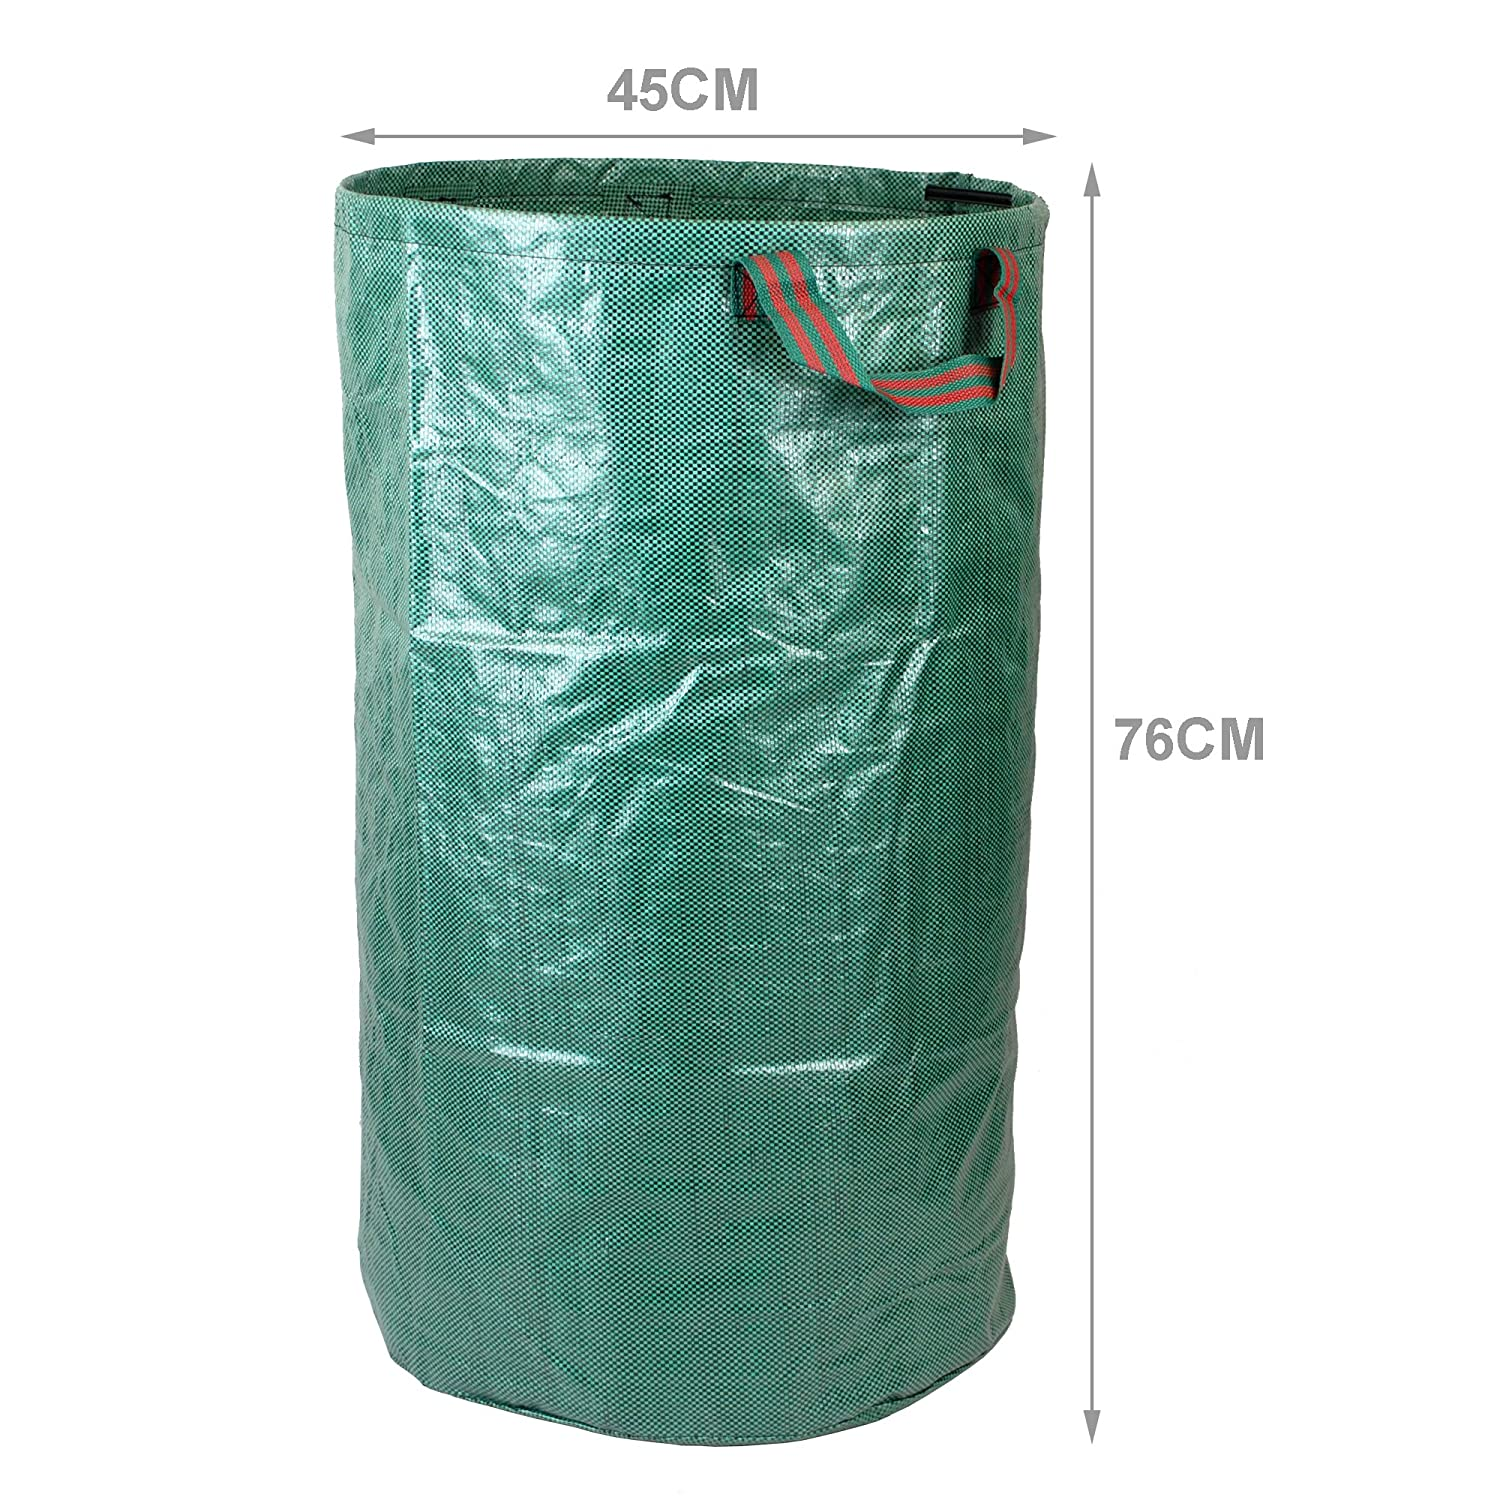 Durable PP Woven Fabric Ideal for Garden Waste Water Repellant Coating Double Stitched Strong Handles simpa 3 x Heavy Duty 120L 120 Litre Garden Bags 76cm x 45cm Leaves /& Cuttings.